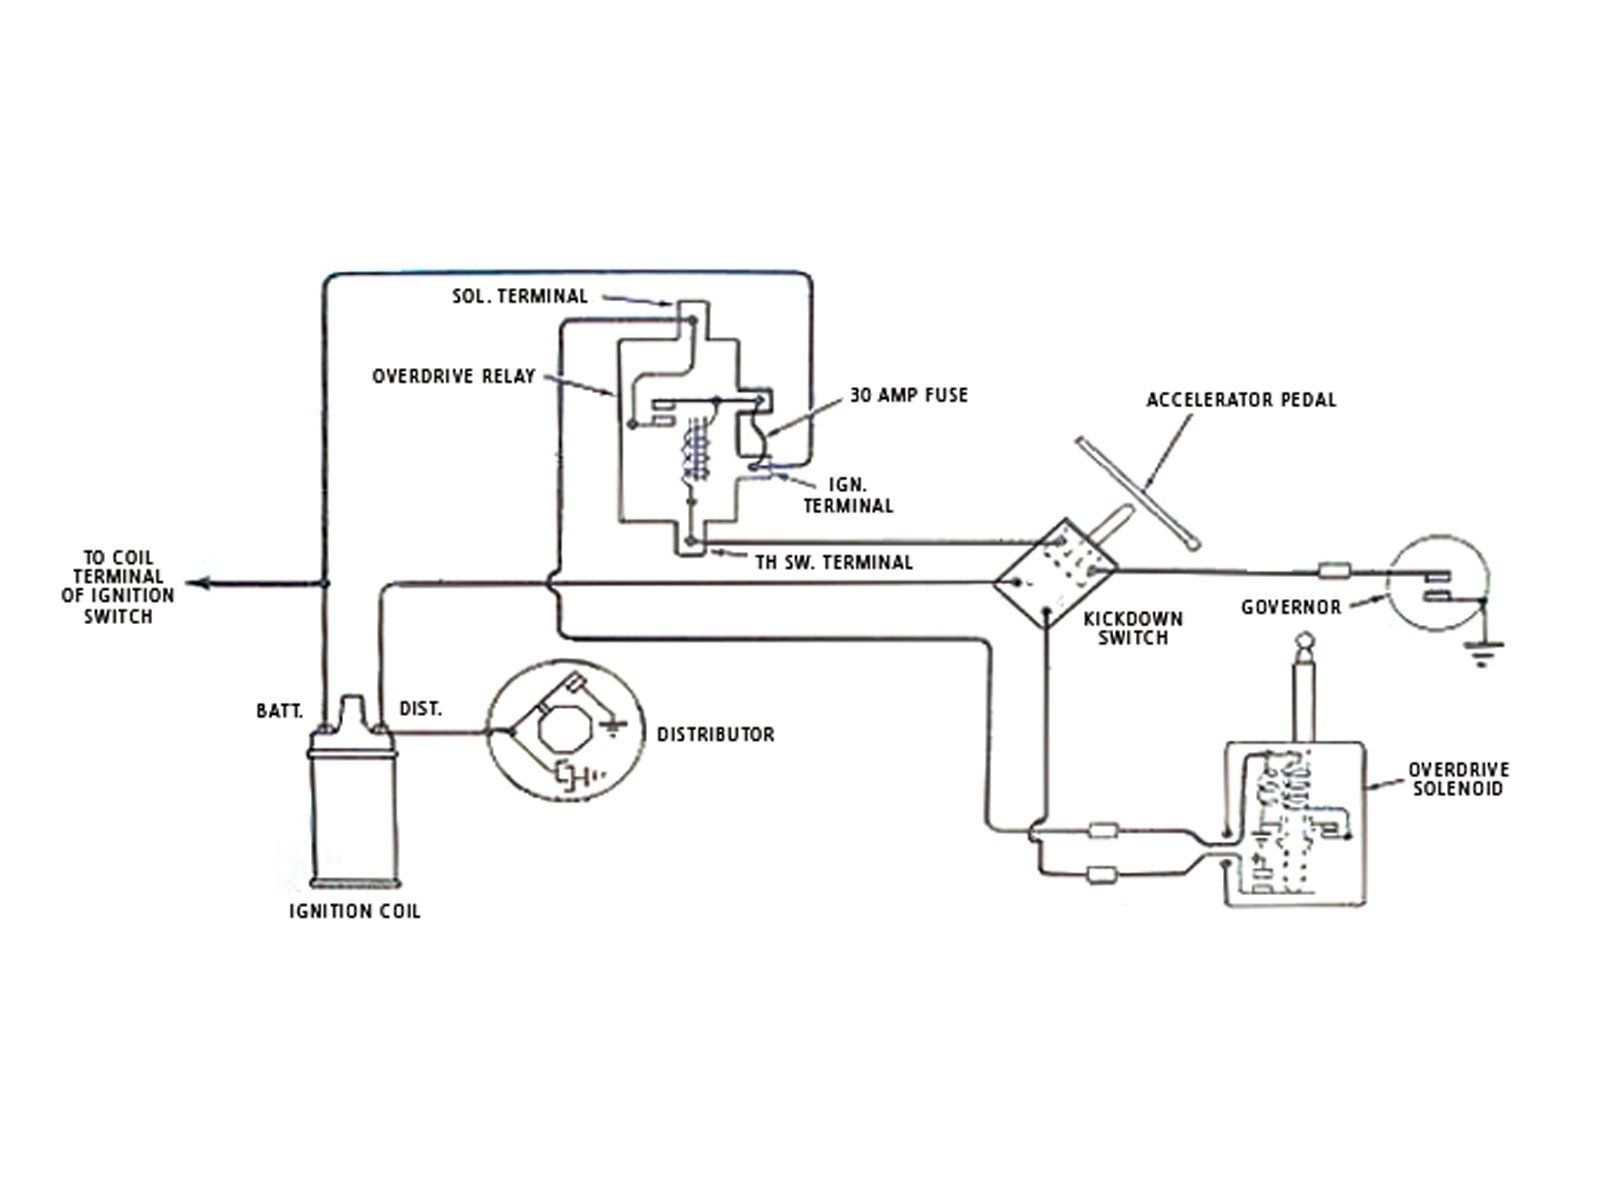 Borg Warner Overdrive Wiring Diagram